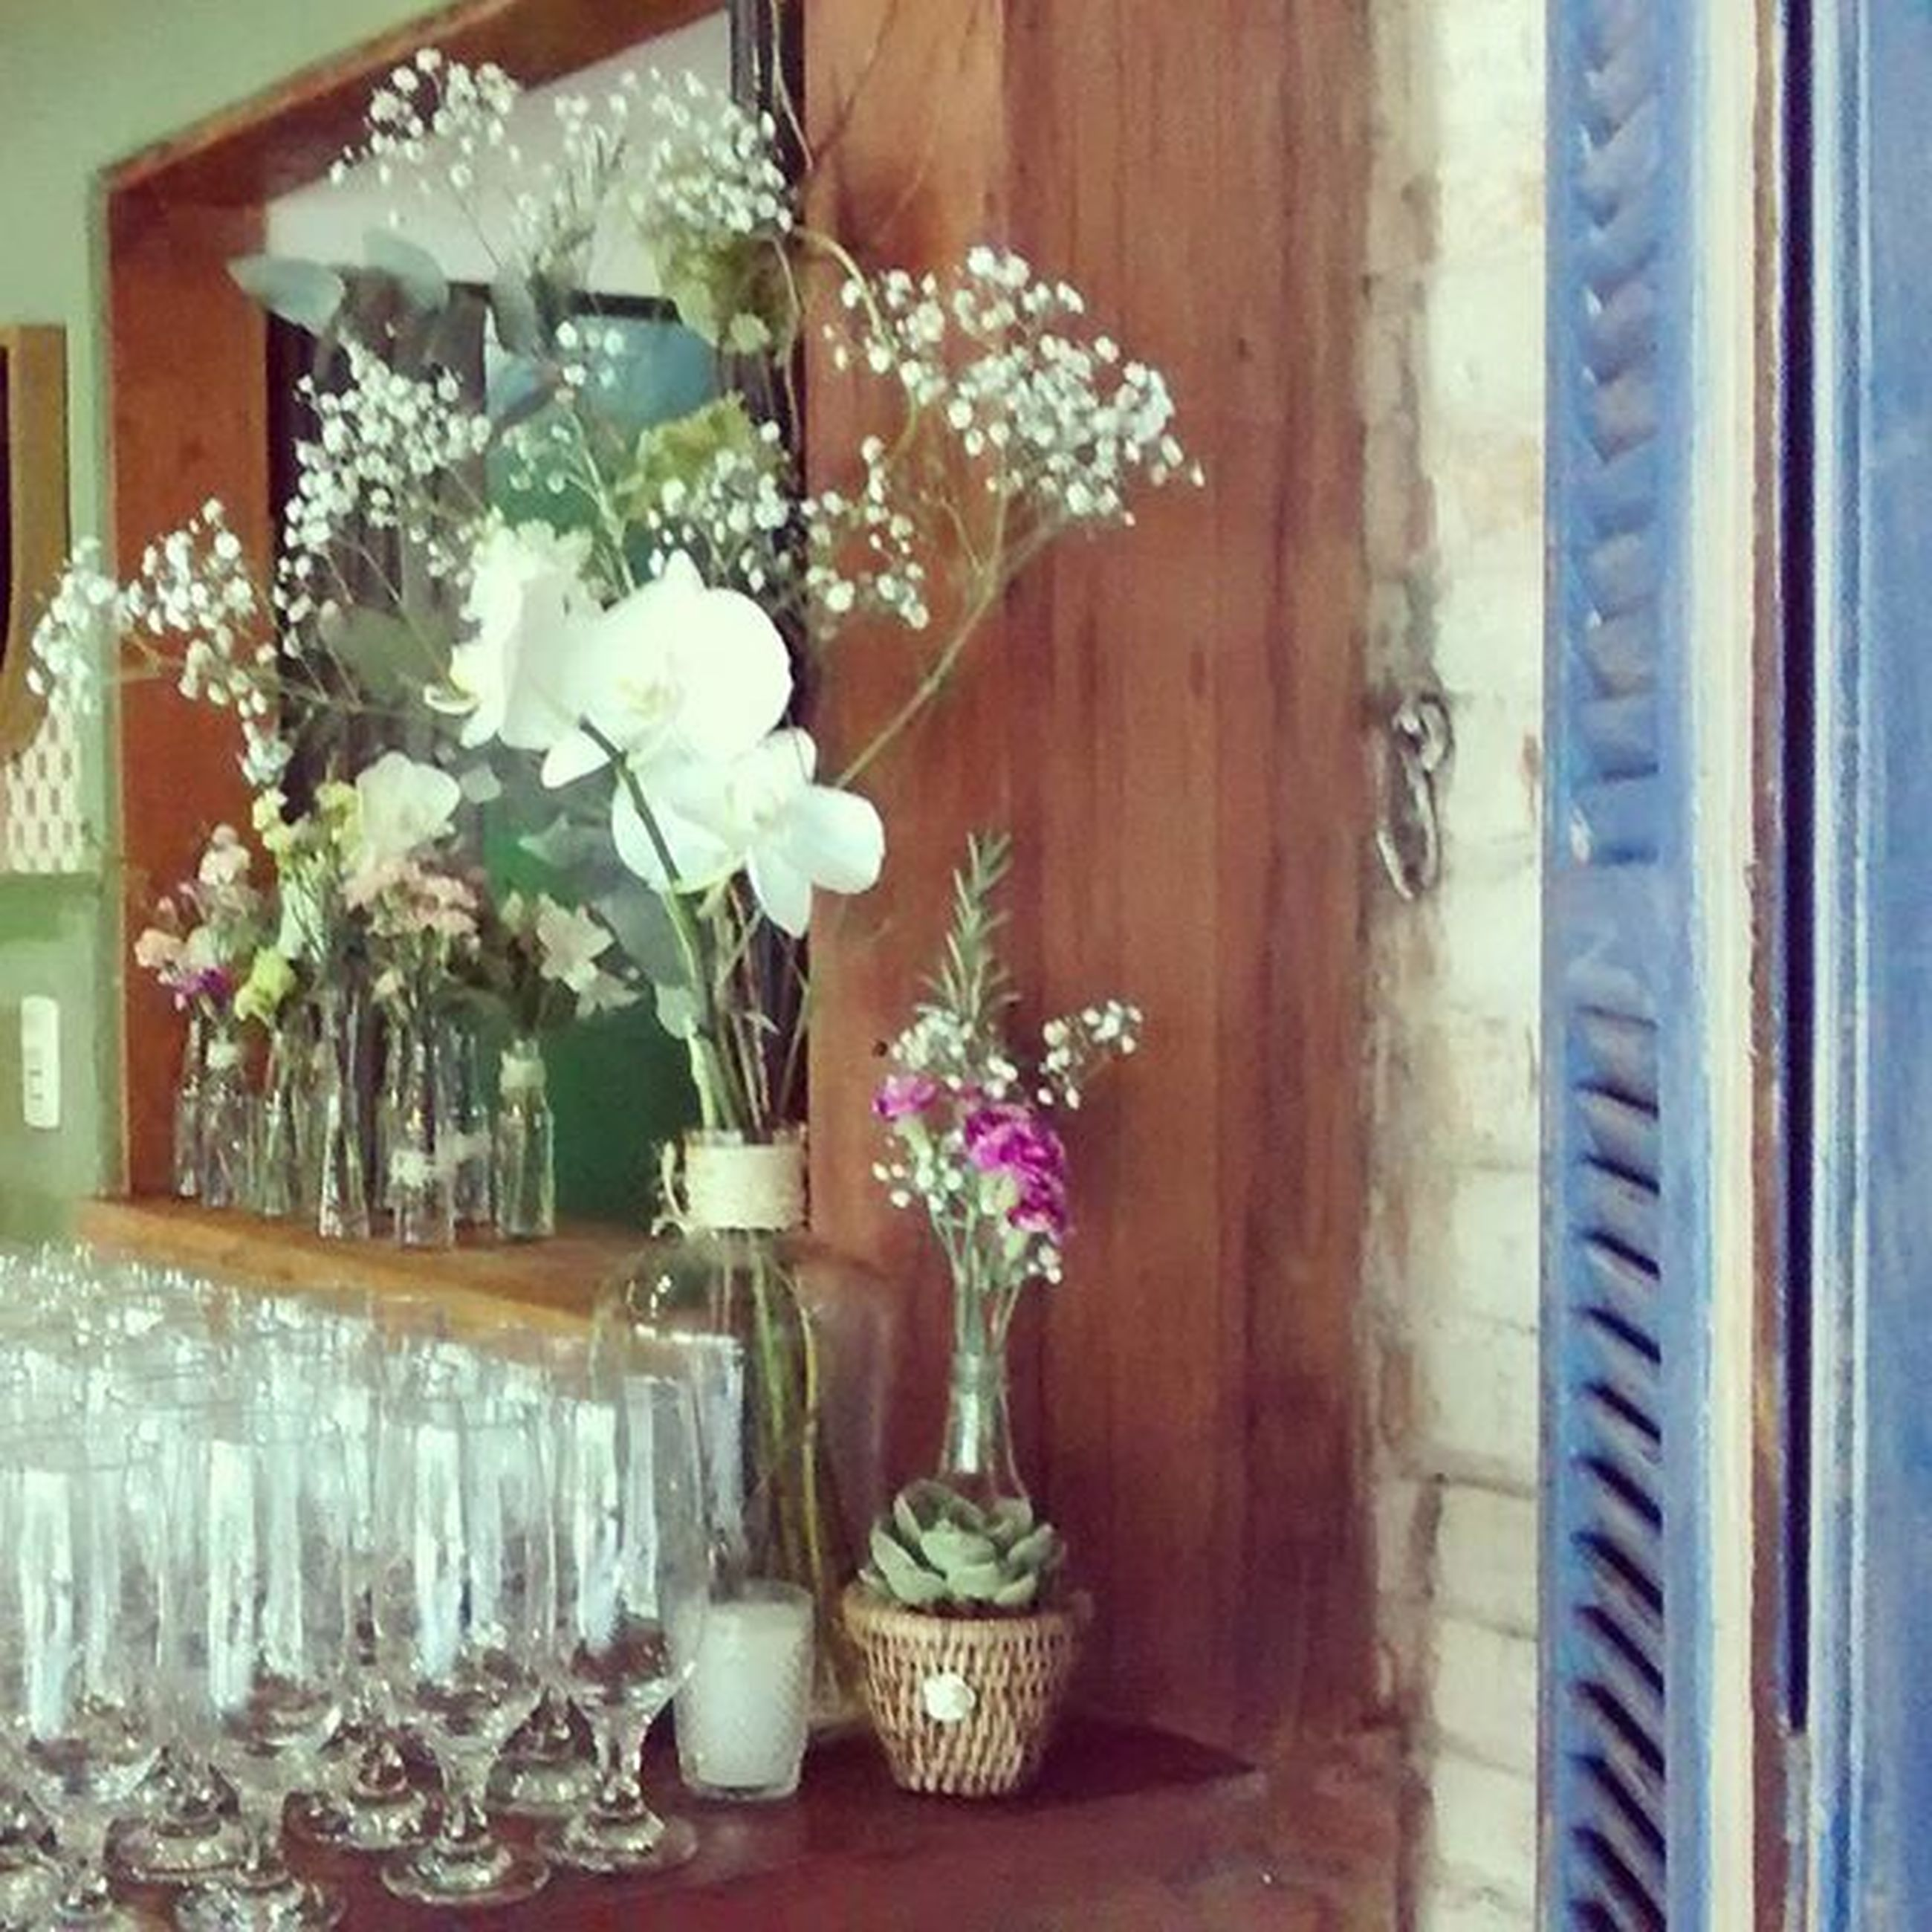 flower, indoors, vase, table, potted plant, freshness, fragility, flower pot, home interior, flower arrangement, decoration, plant, bouquet, window, glass - material, wood - material, petal, house, growth, bunch of flowers